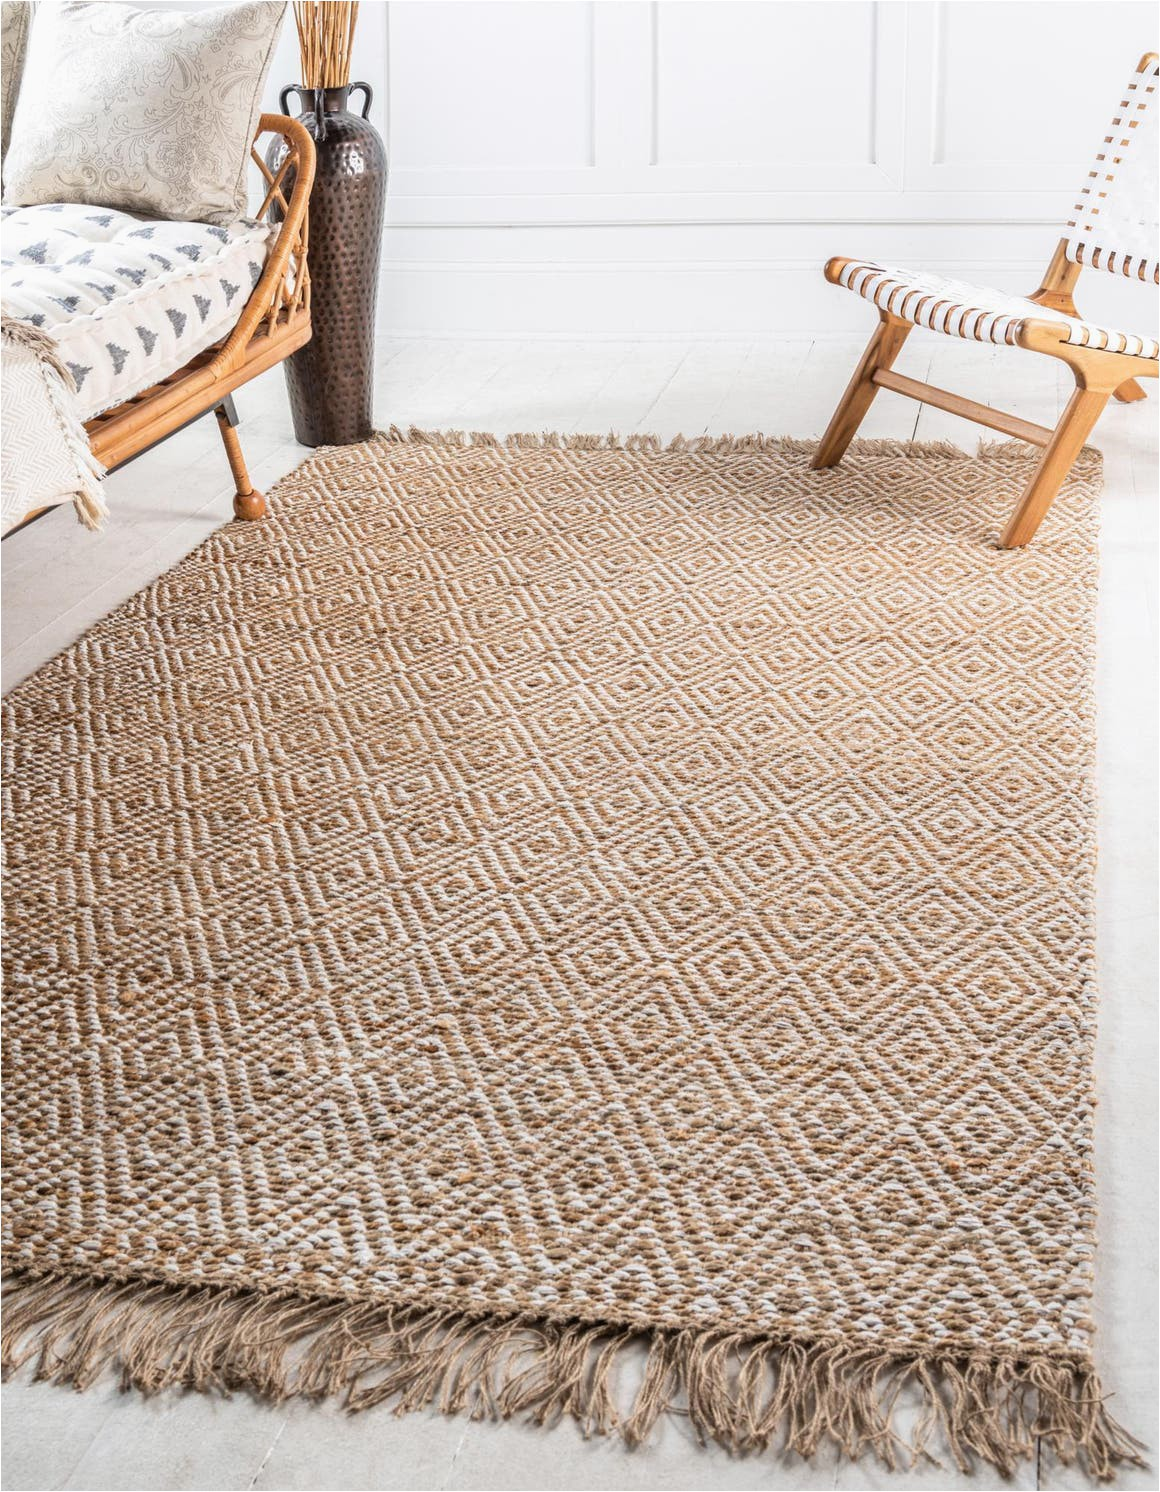 natural 5x8 braided jute area rug